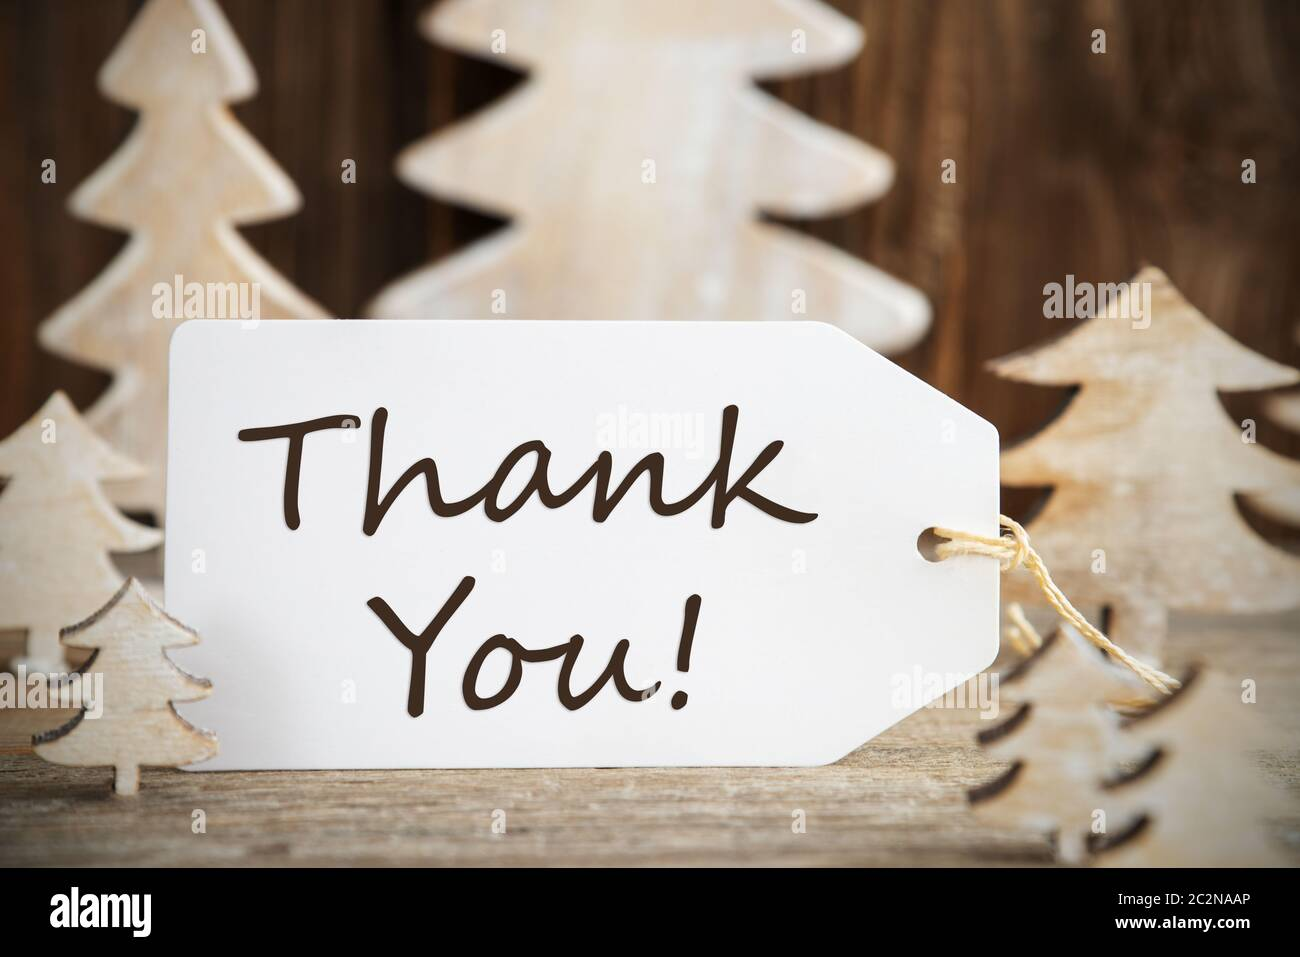 Label With English Text Thank You White Wooden Christmas Tree As Decoration Brown Wooden Background Stock Photo Alamy